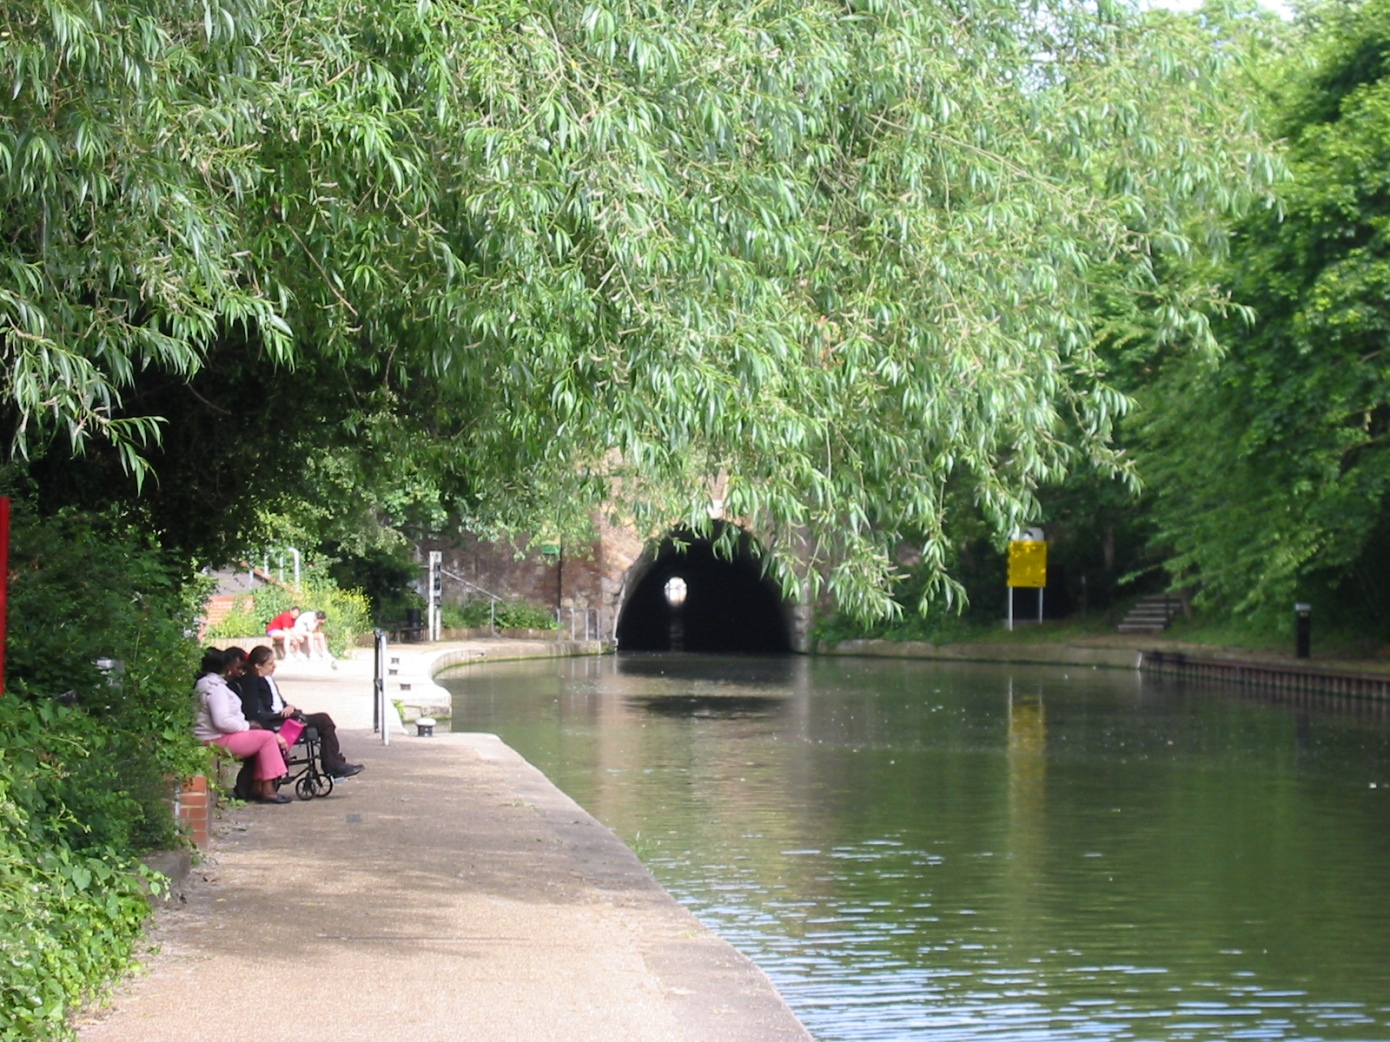 islington_tunnel_050605.jpg